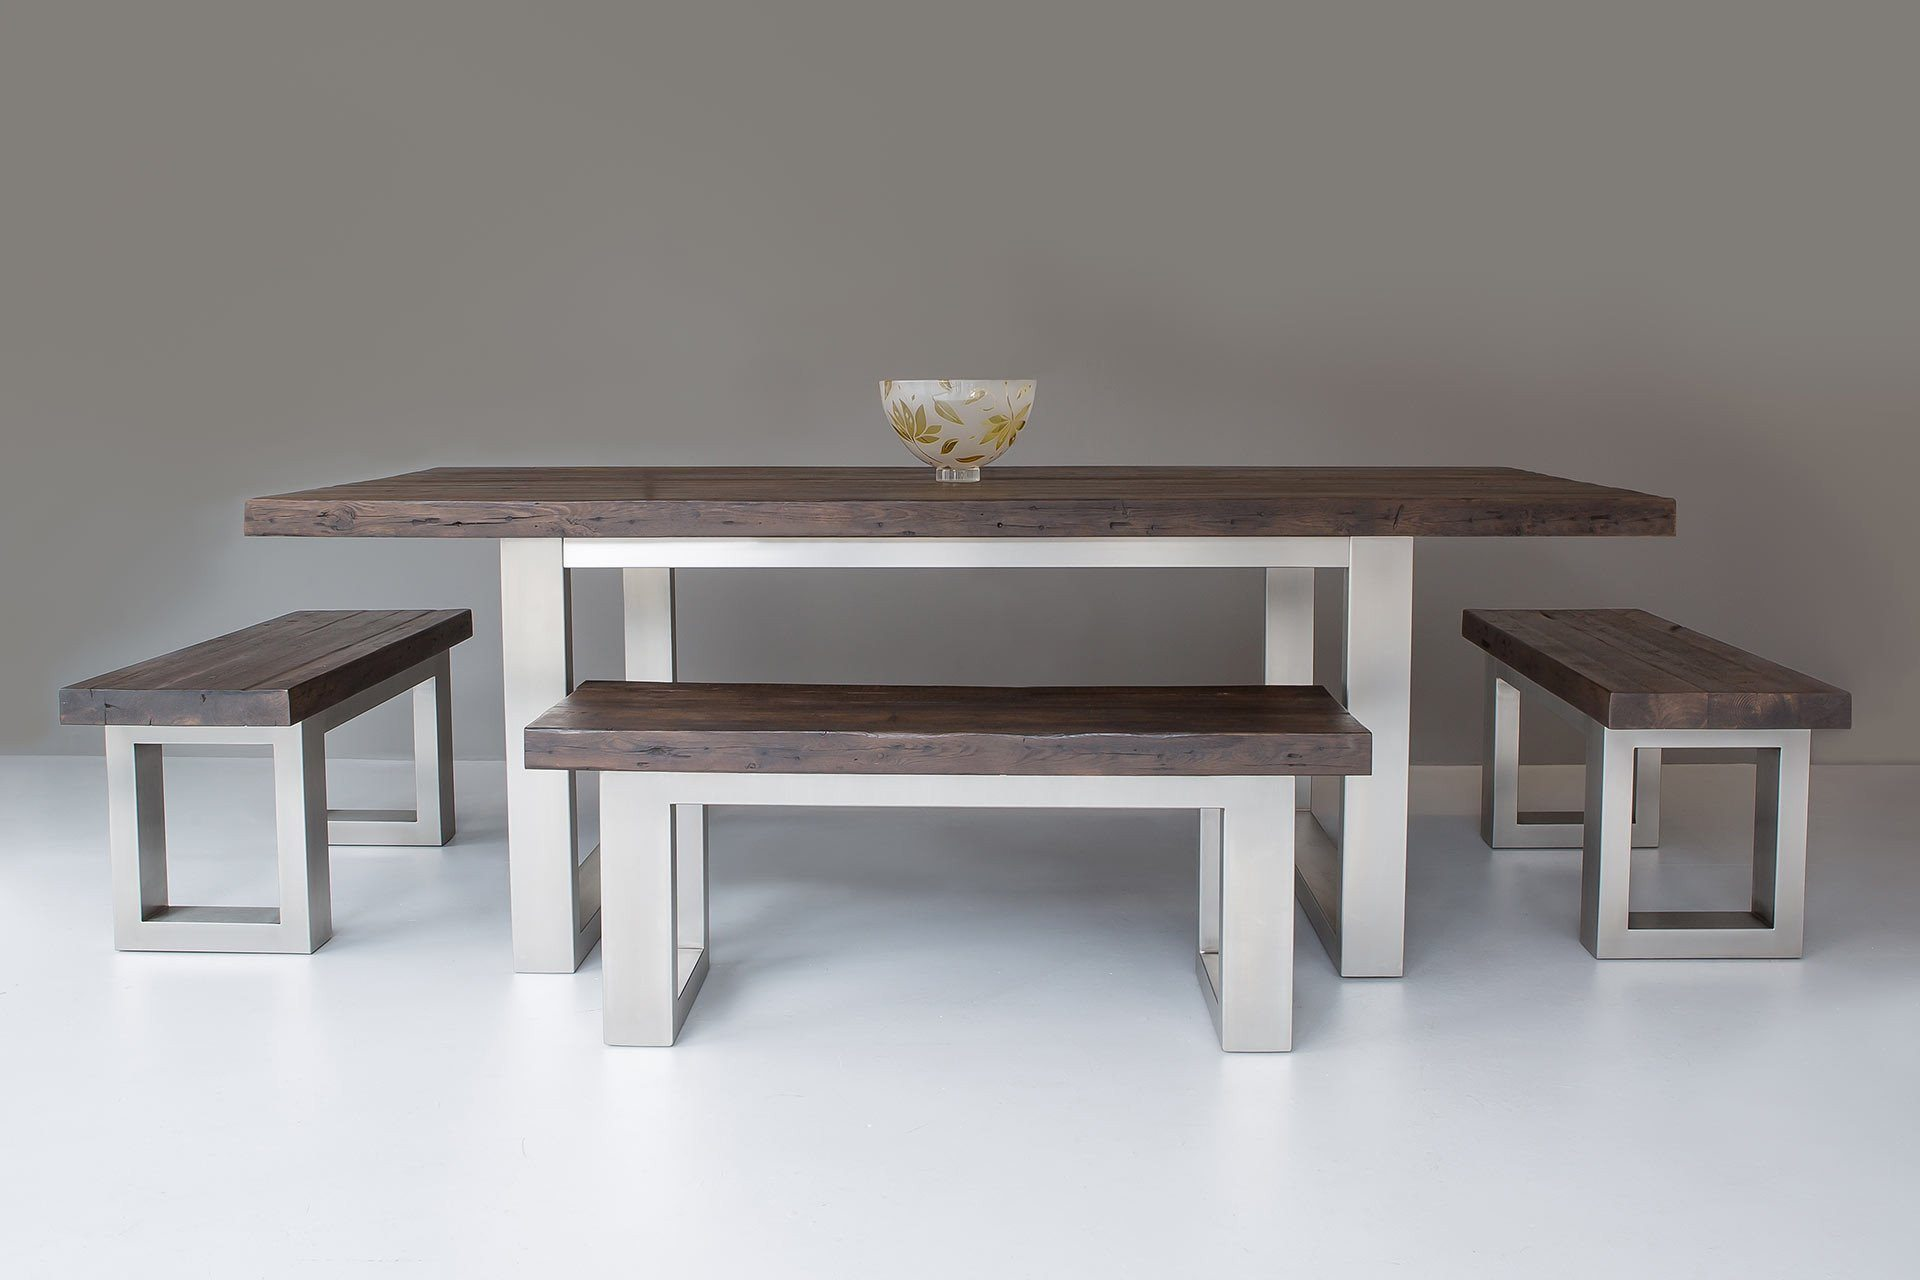 Classic 100cm End Benches & 117cm Bench With 223cm Long Overhang Table (Sold Separately)